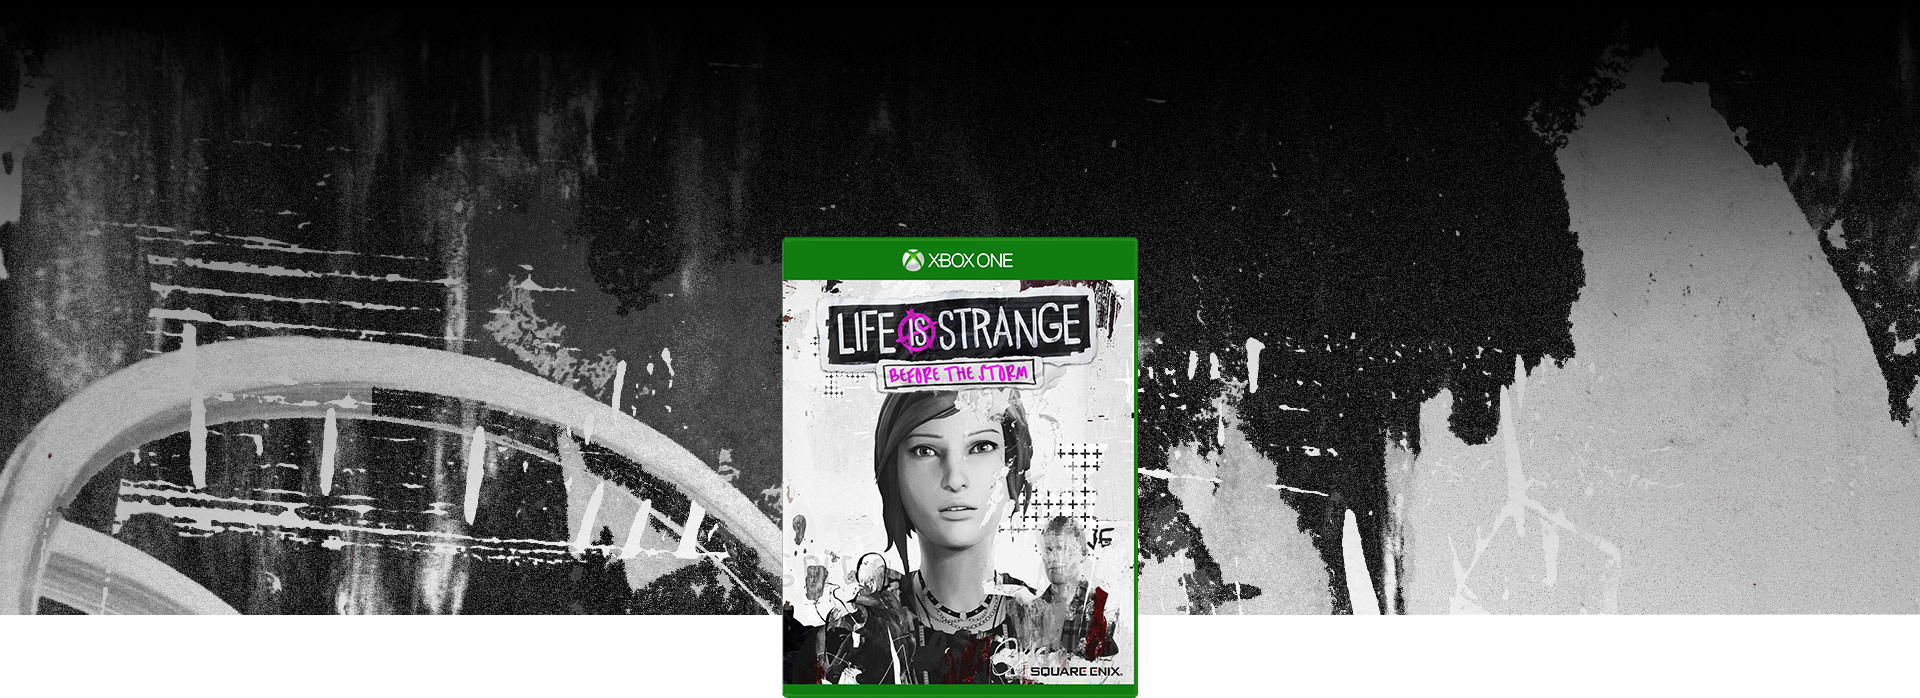 Life is Strange Before the Storm-coverbilde Delvis fjernet kollasj i bakgrunnen